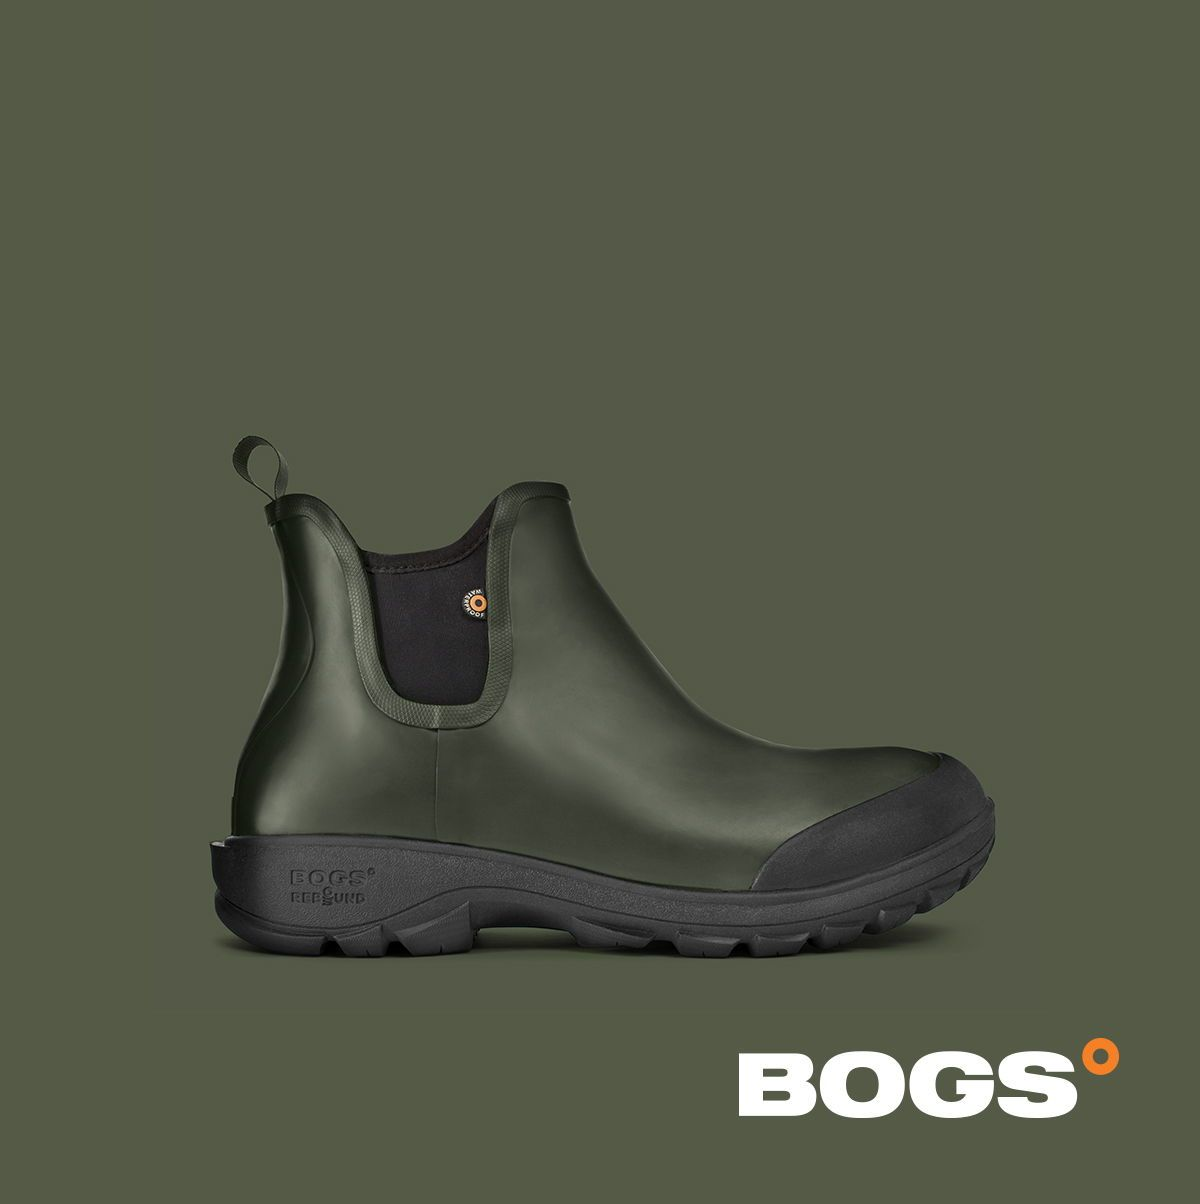 Slip on boots, Boots, Bogs boots